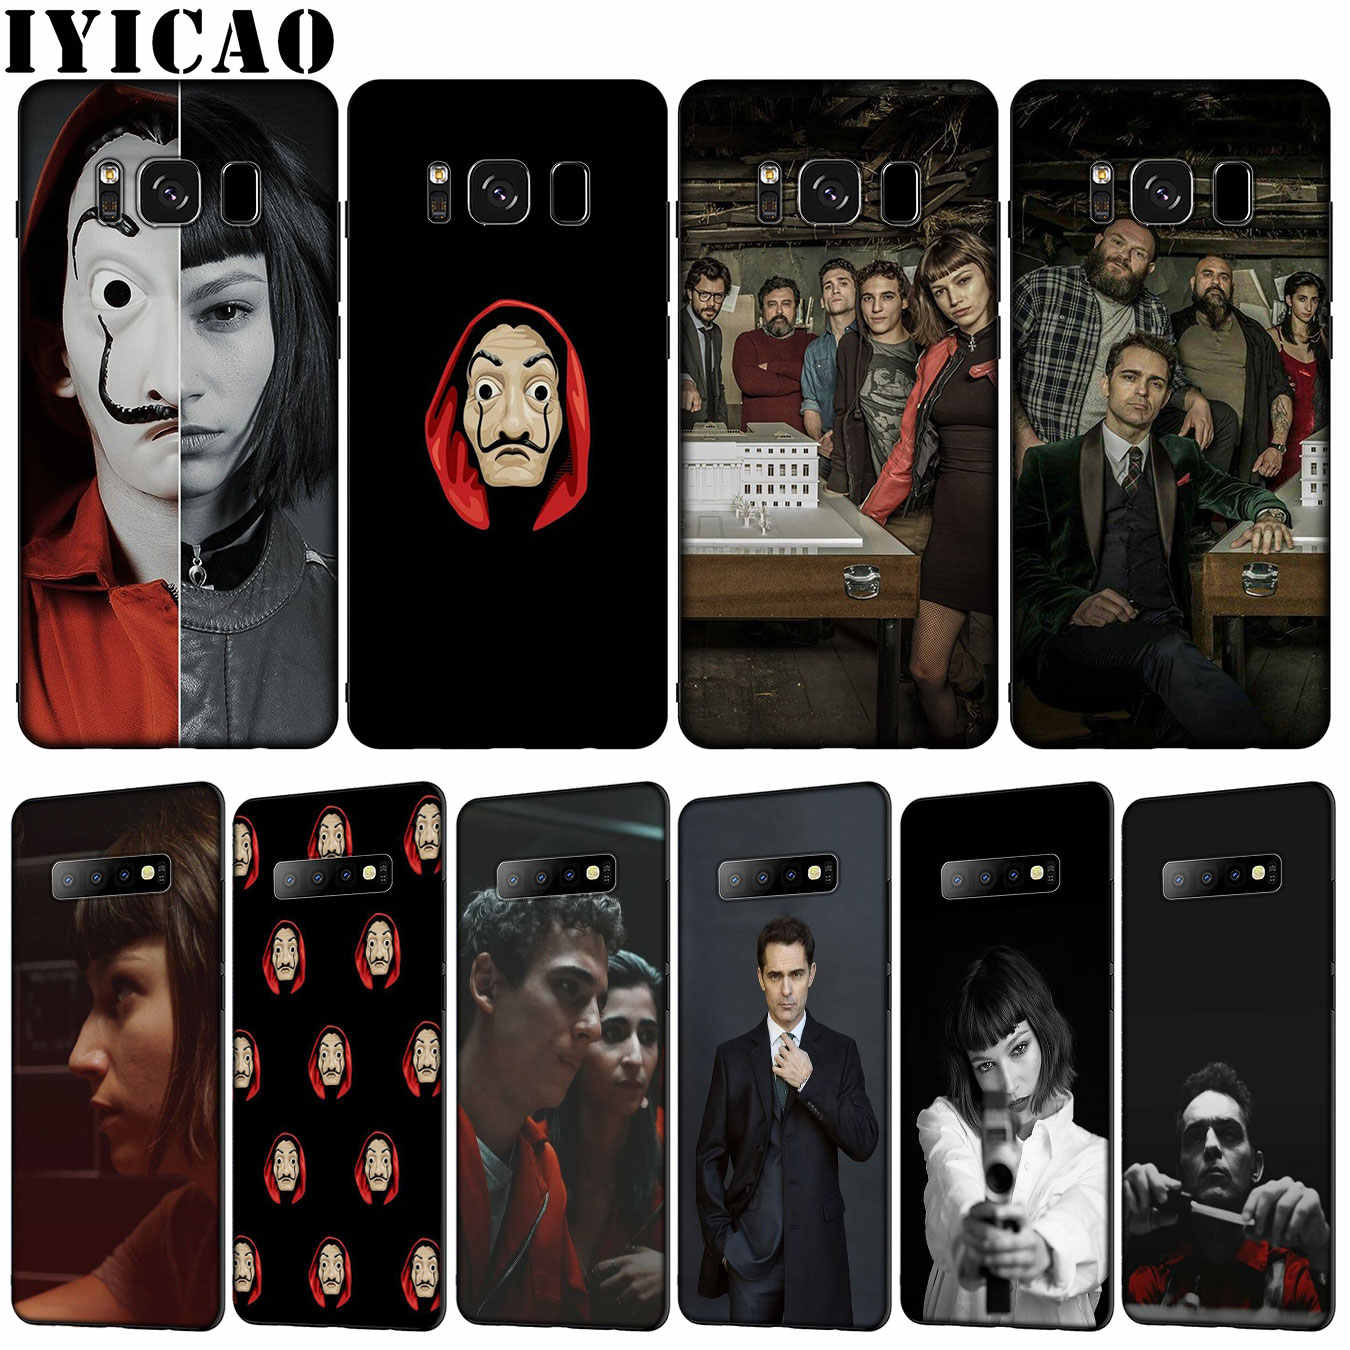 IYICAO TV The Paper House Money Heist Soft TPU Silicone Phone Case for Samsung Galaxy S10 E S9 S8 Plus S6 S7 Edge S10e